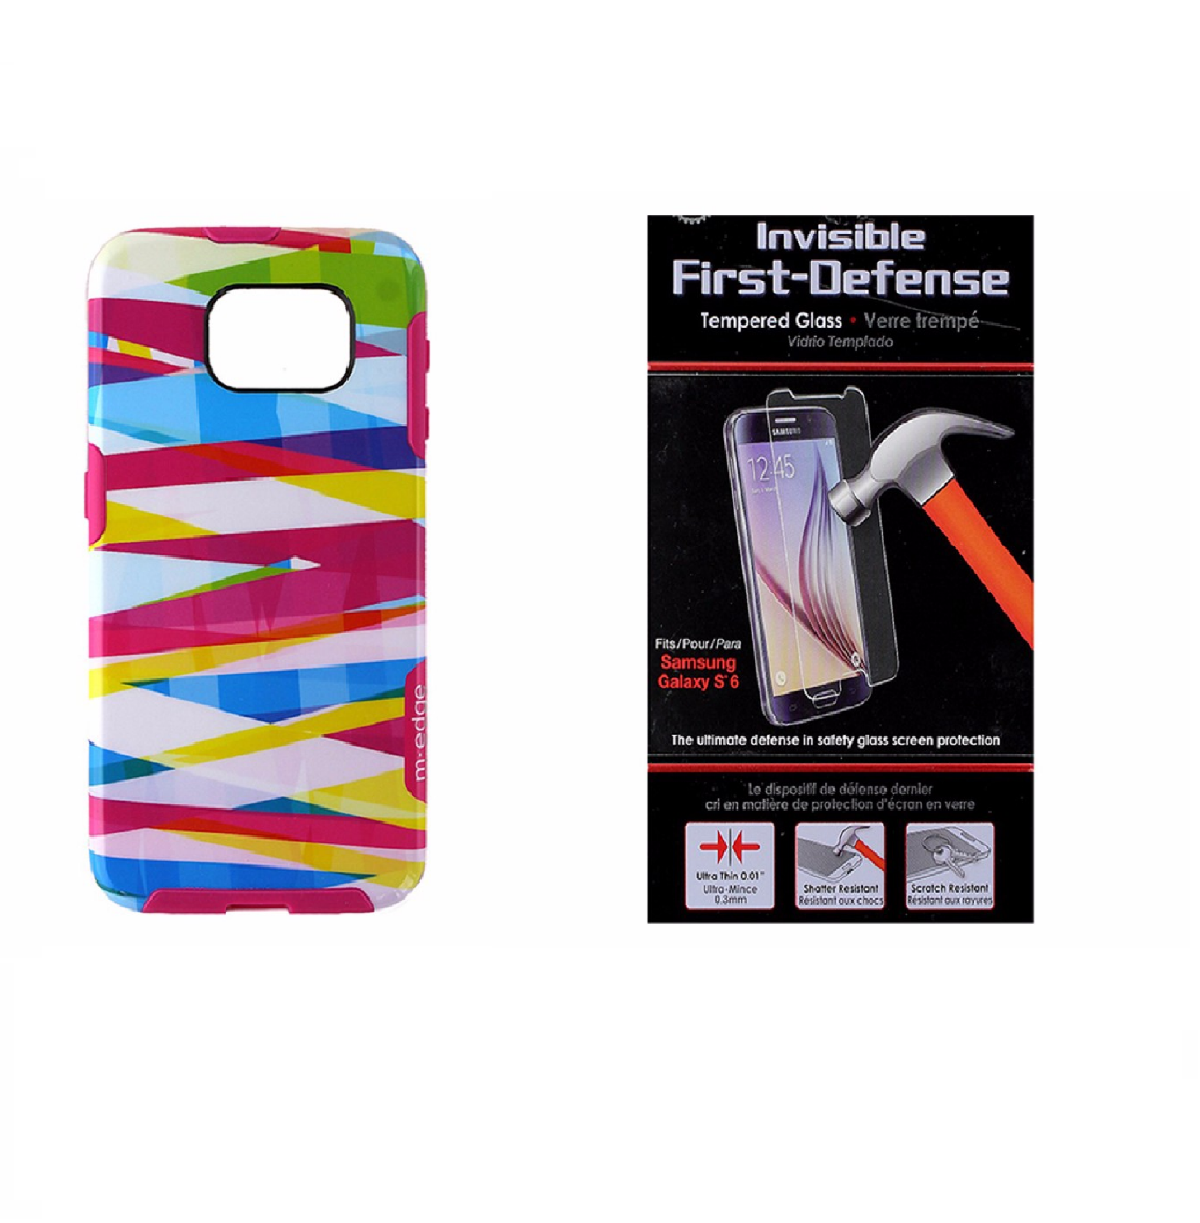 M-Edge Multicolor Case and Qmadix Glass Screen Protector for Samsung Galaxy S6